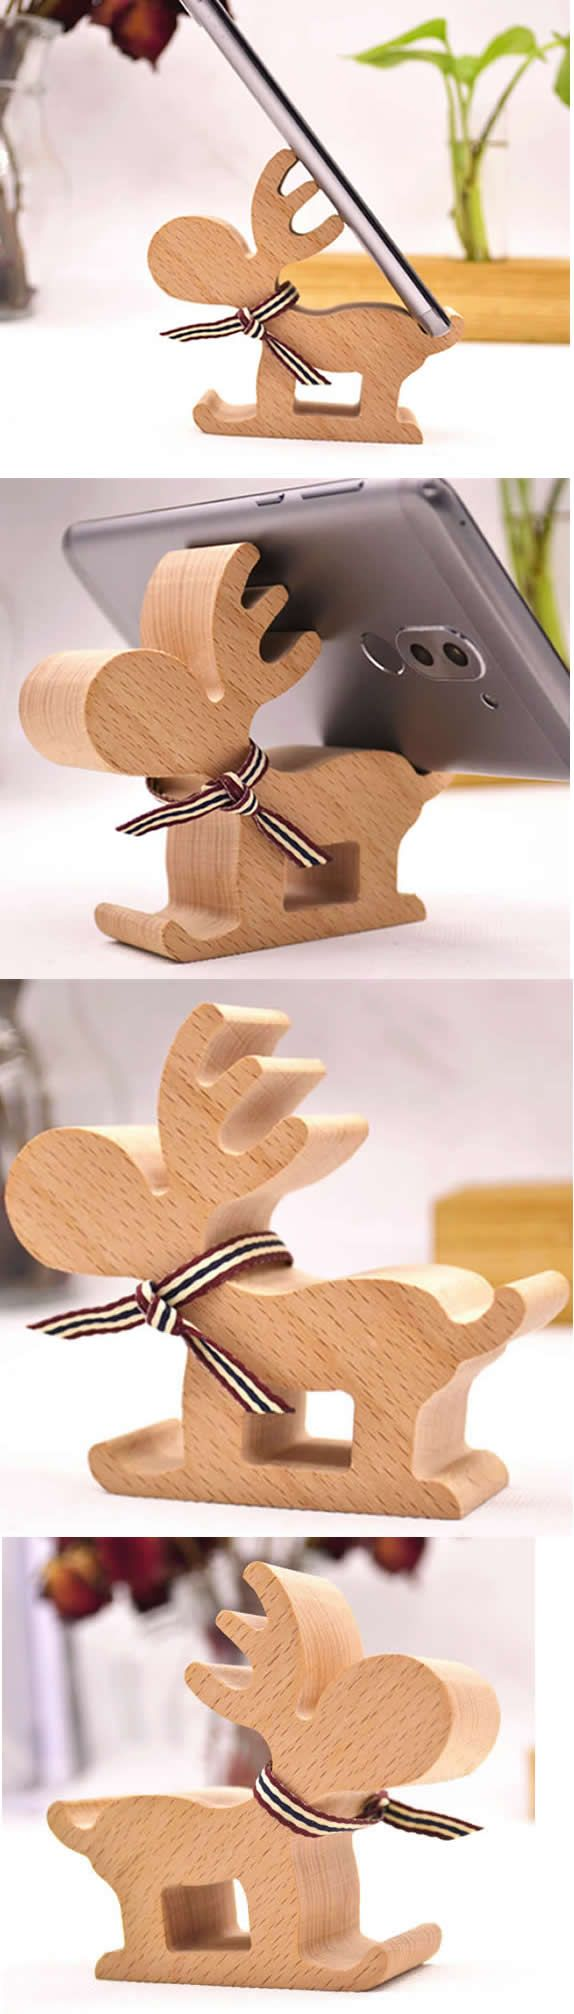 Wooden David's Deer Shaped iPhone iPad Mobile SmartPhone Holder Stand Mount for iPhone iPad and Other Cell Phone